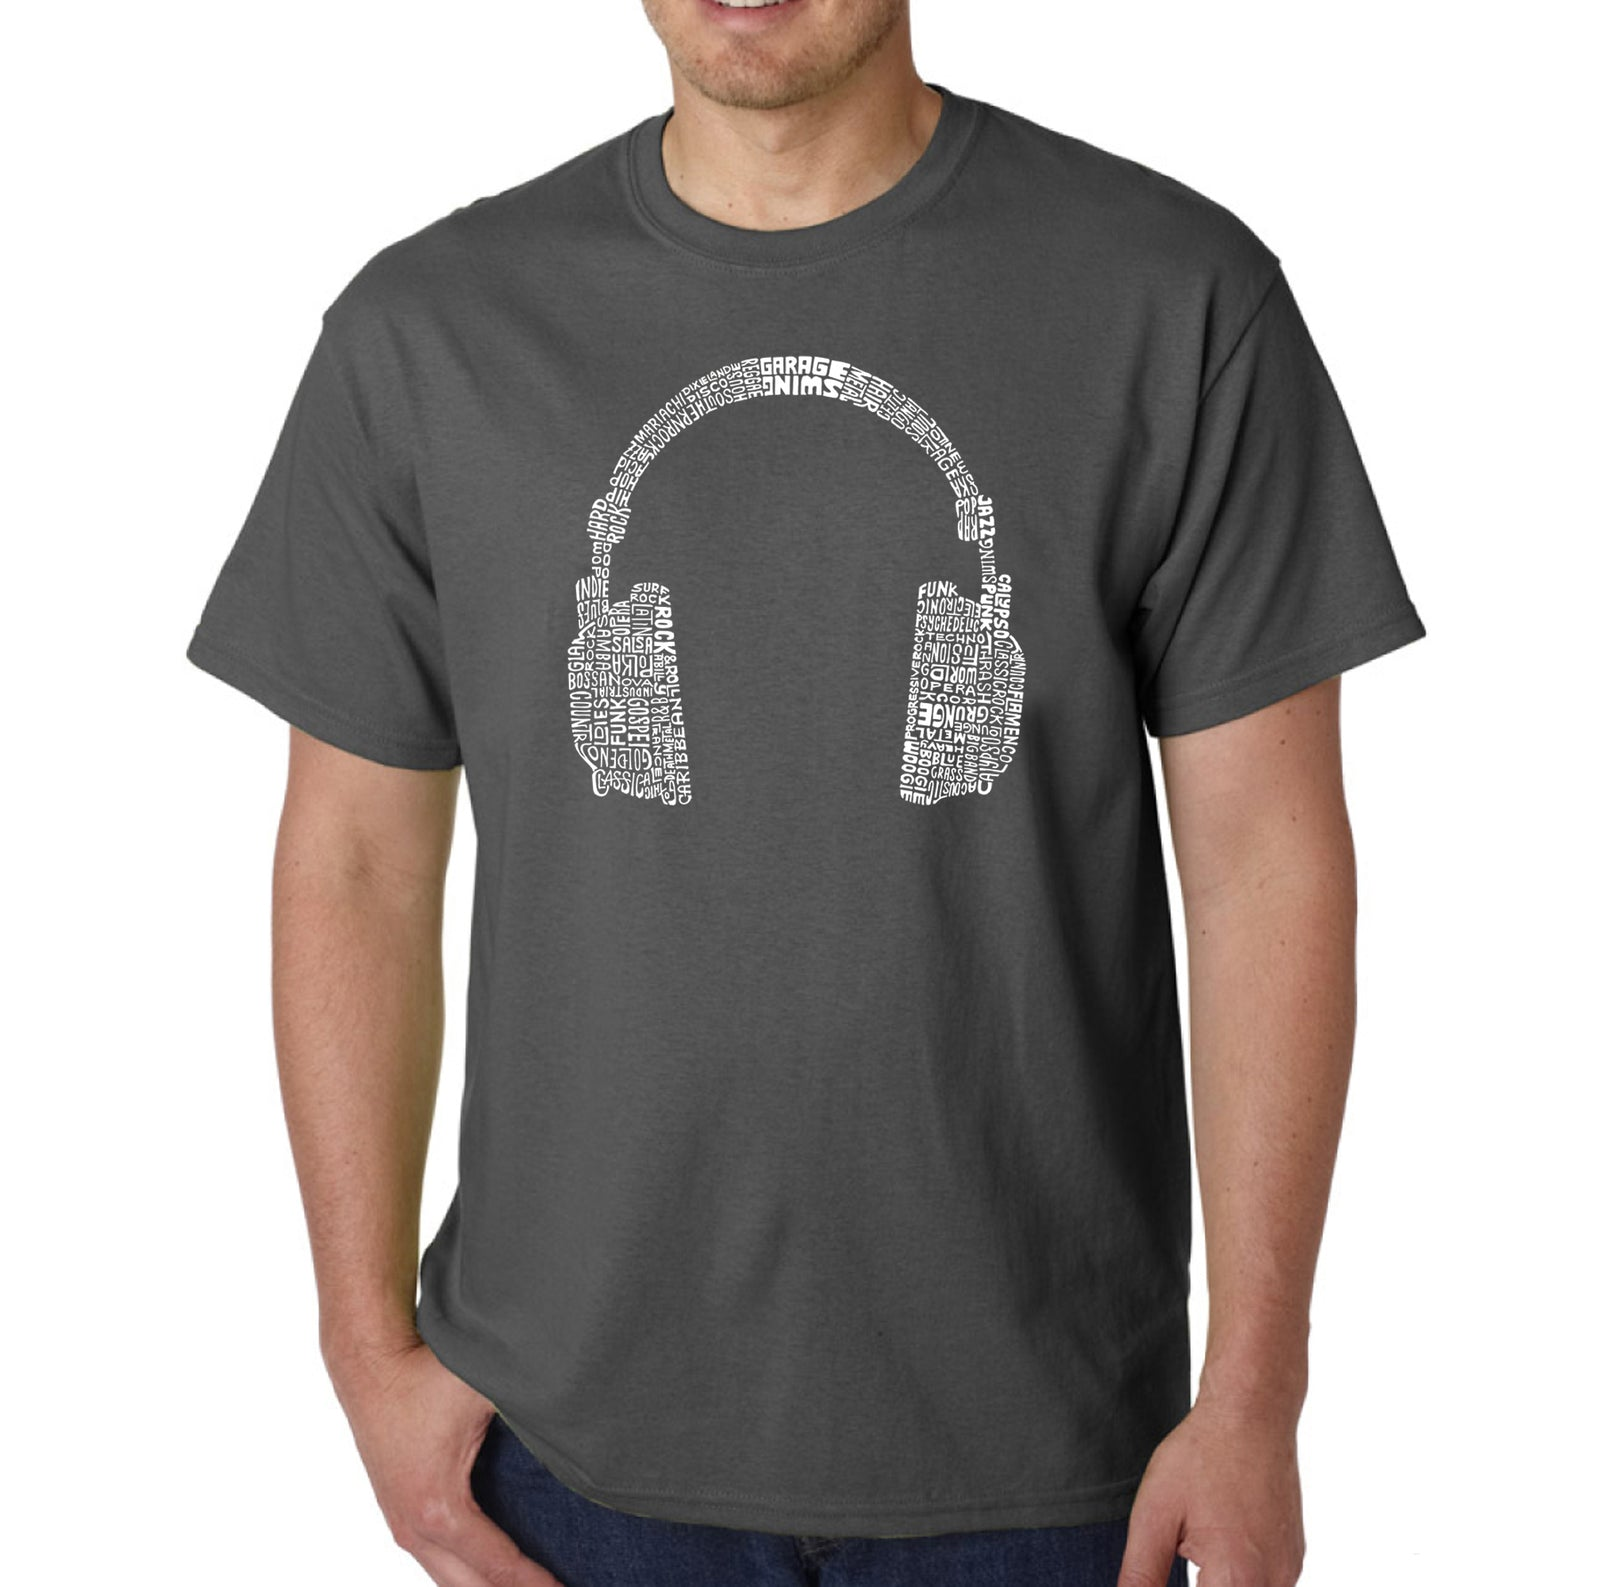 Men's T-shirt - 63 DIFFERENT GENRES OF MUSIC